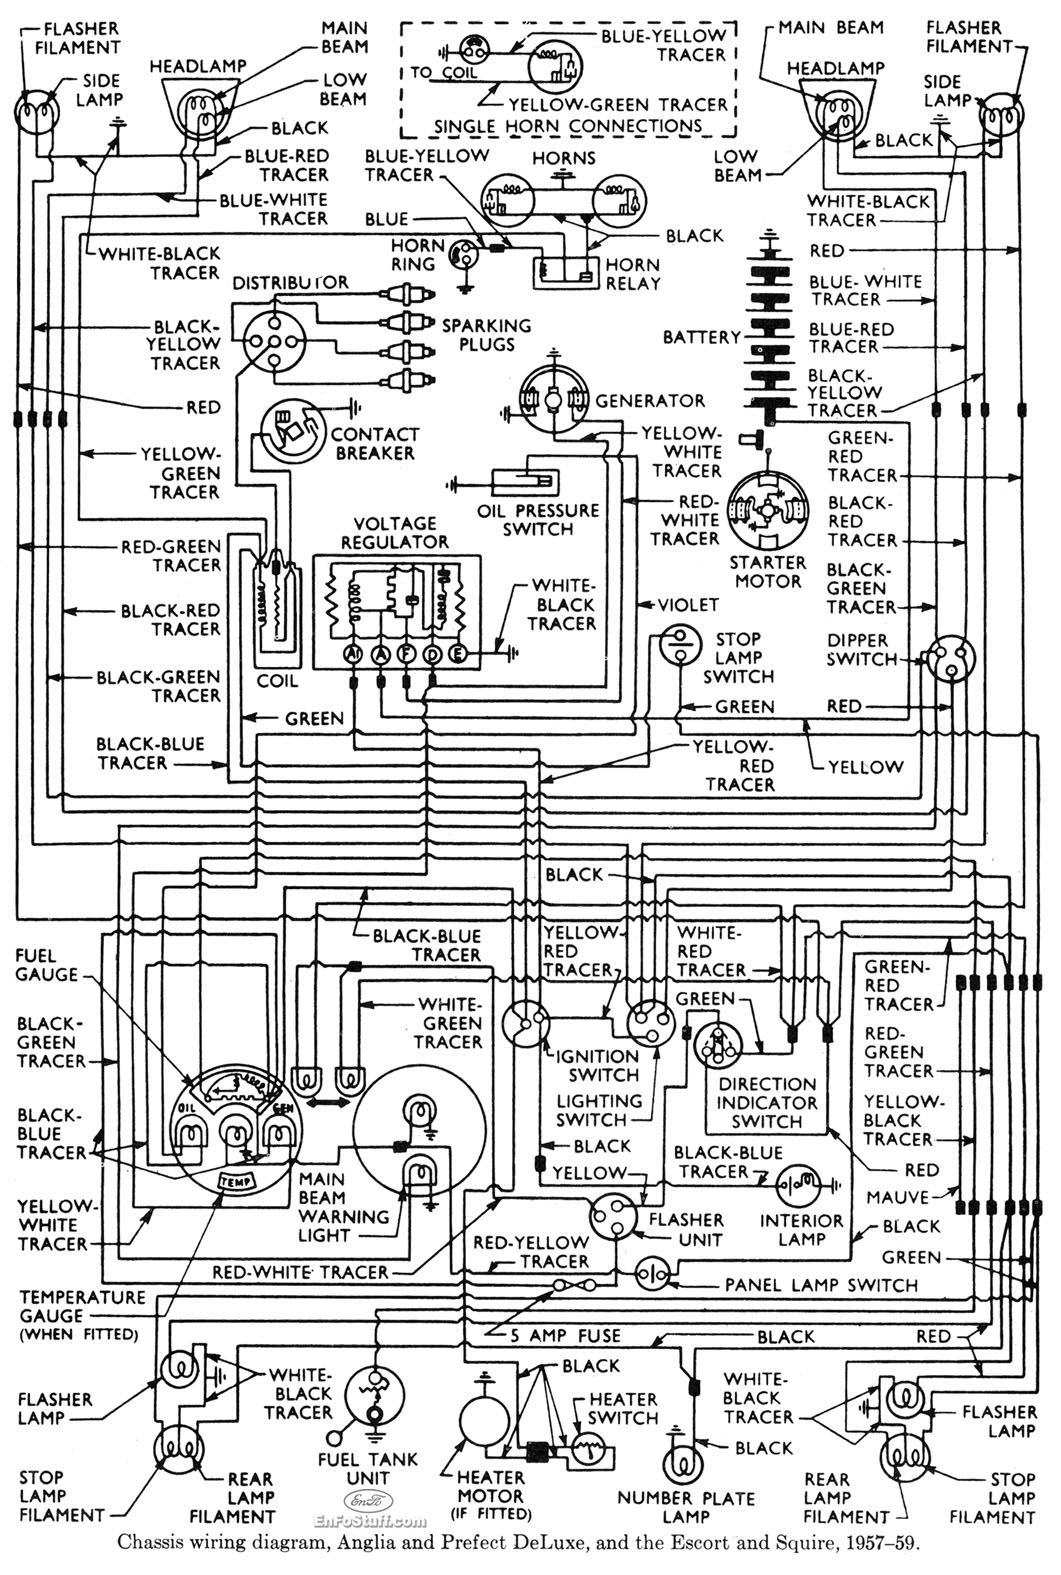 ford anglia prefect escort squire 1957 59 wiring diagram 1955 electrical wiring schematic suppliment 110 41 5 readingrat net 1957 ford wiring diagram at mr168.co